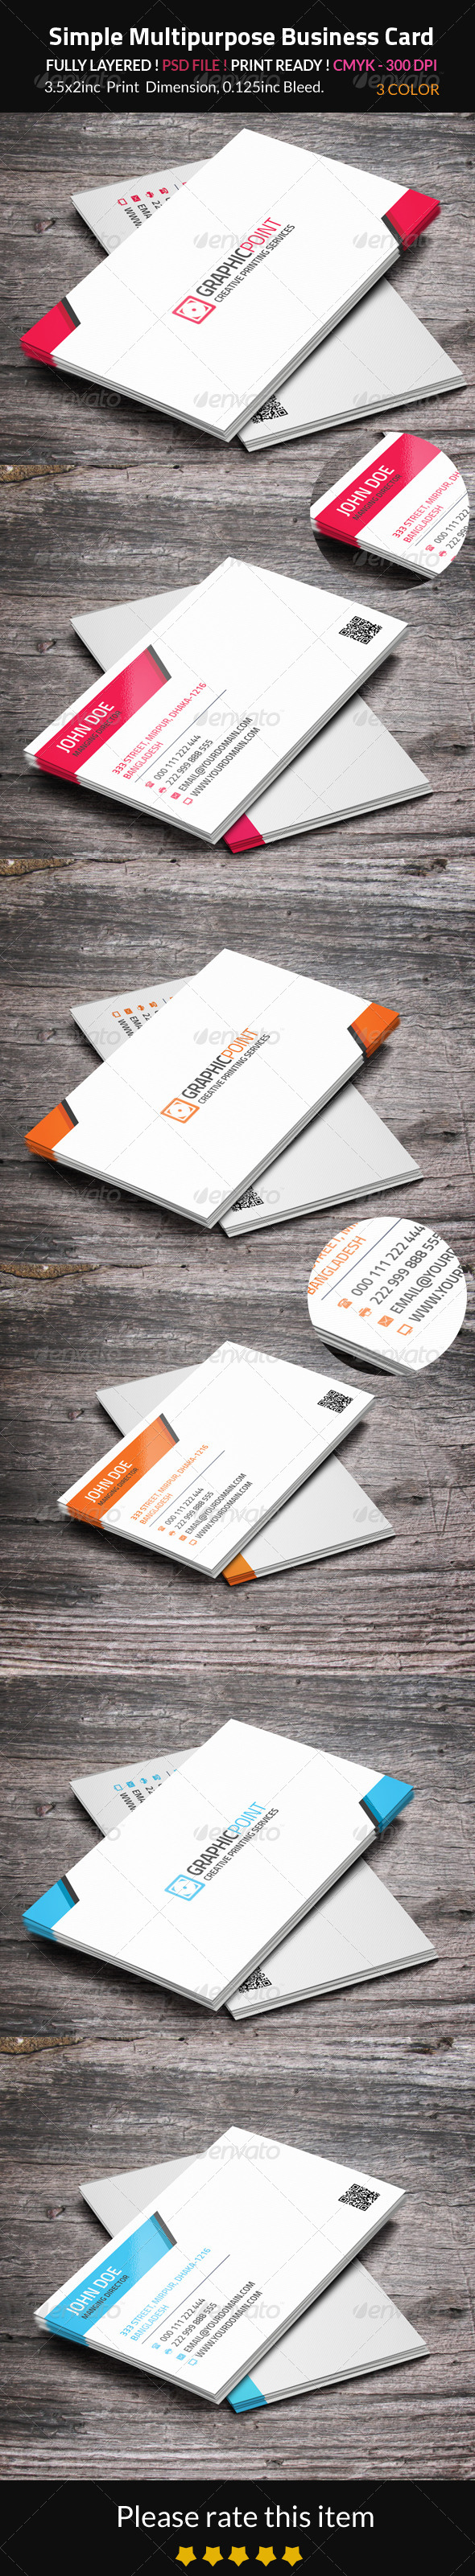 GraphicRiver Simple Multipurpose Business Card 8518291